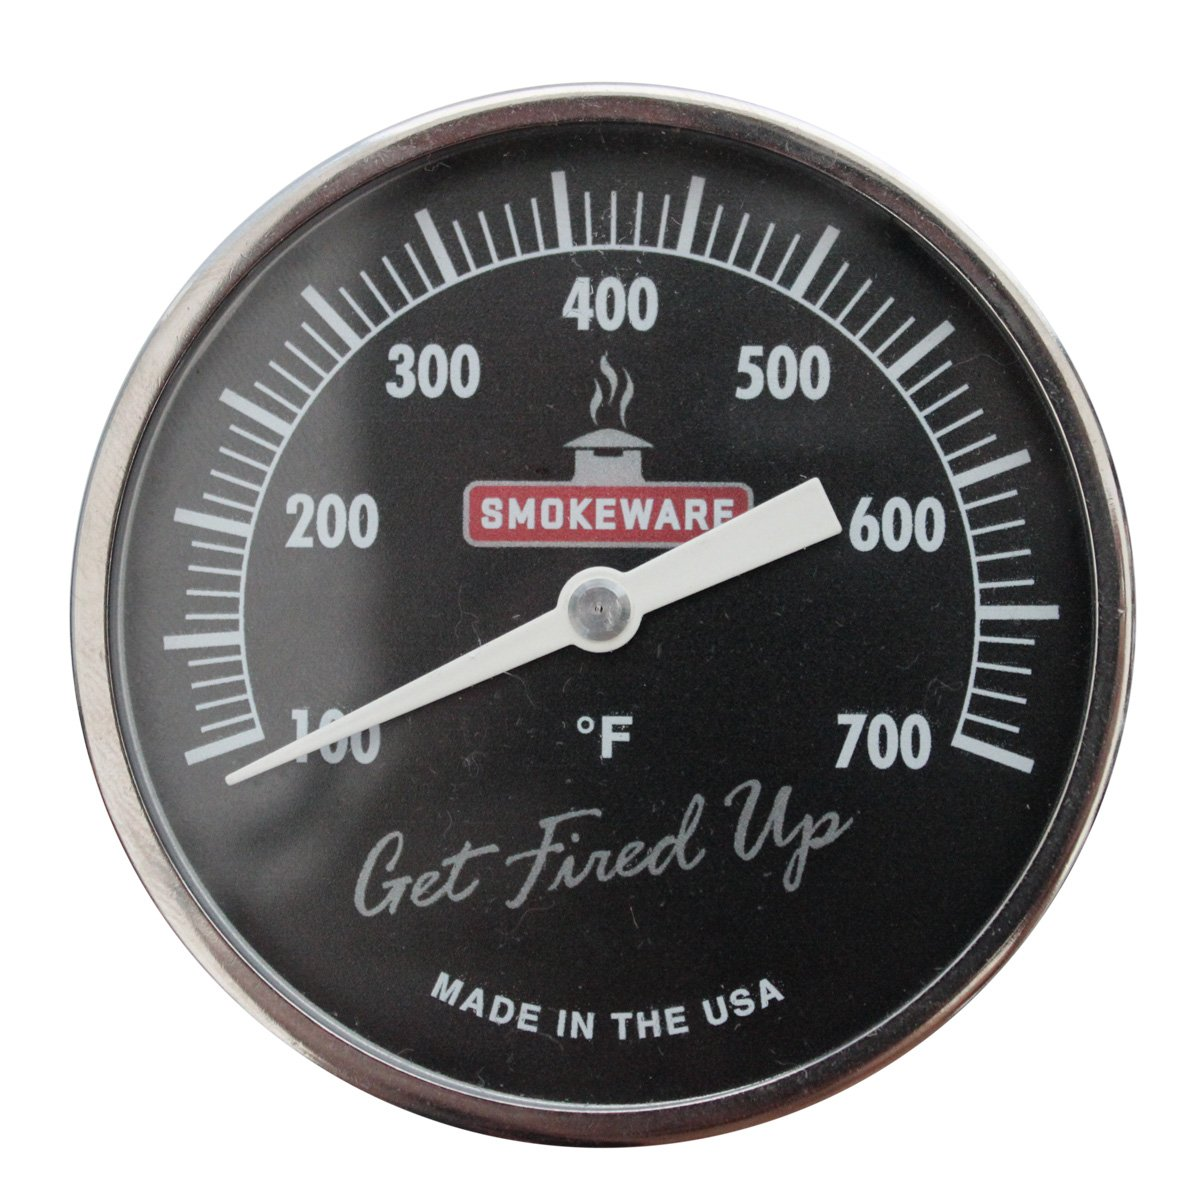 SmokeWare Temperature Gauge - 3-inch Face, 0-700°F Range, Black, Replacement Thermometer for Big Green Egg Grills, Made in The USA by SmokeWare